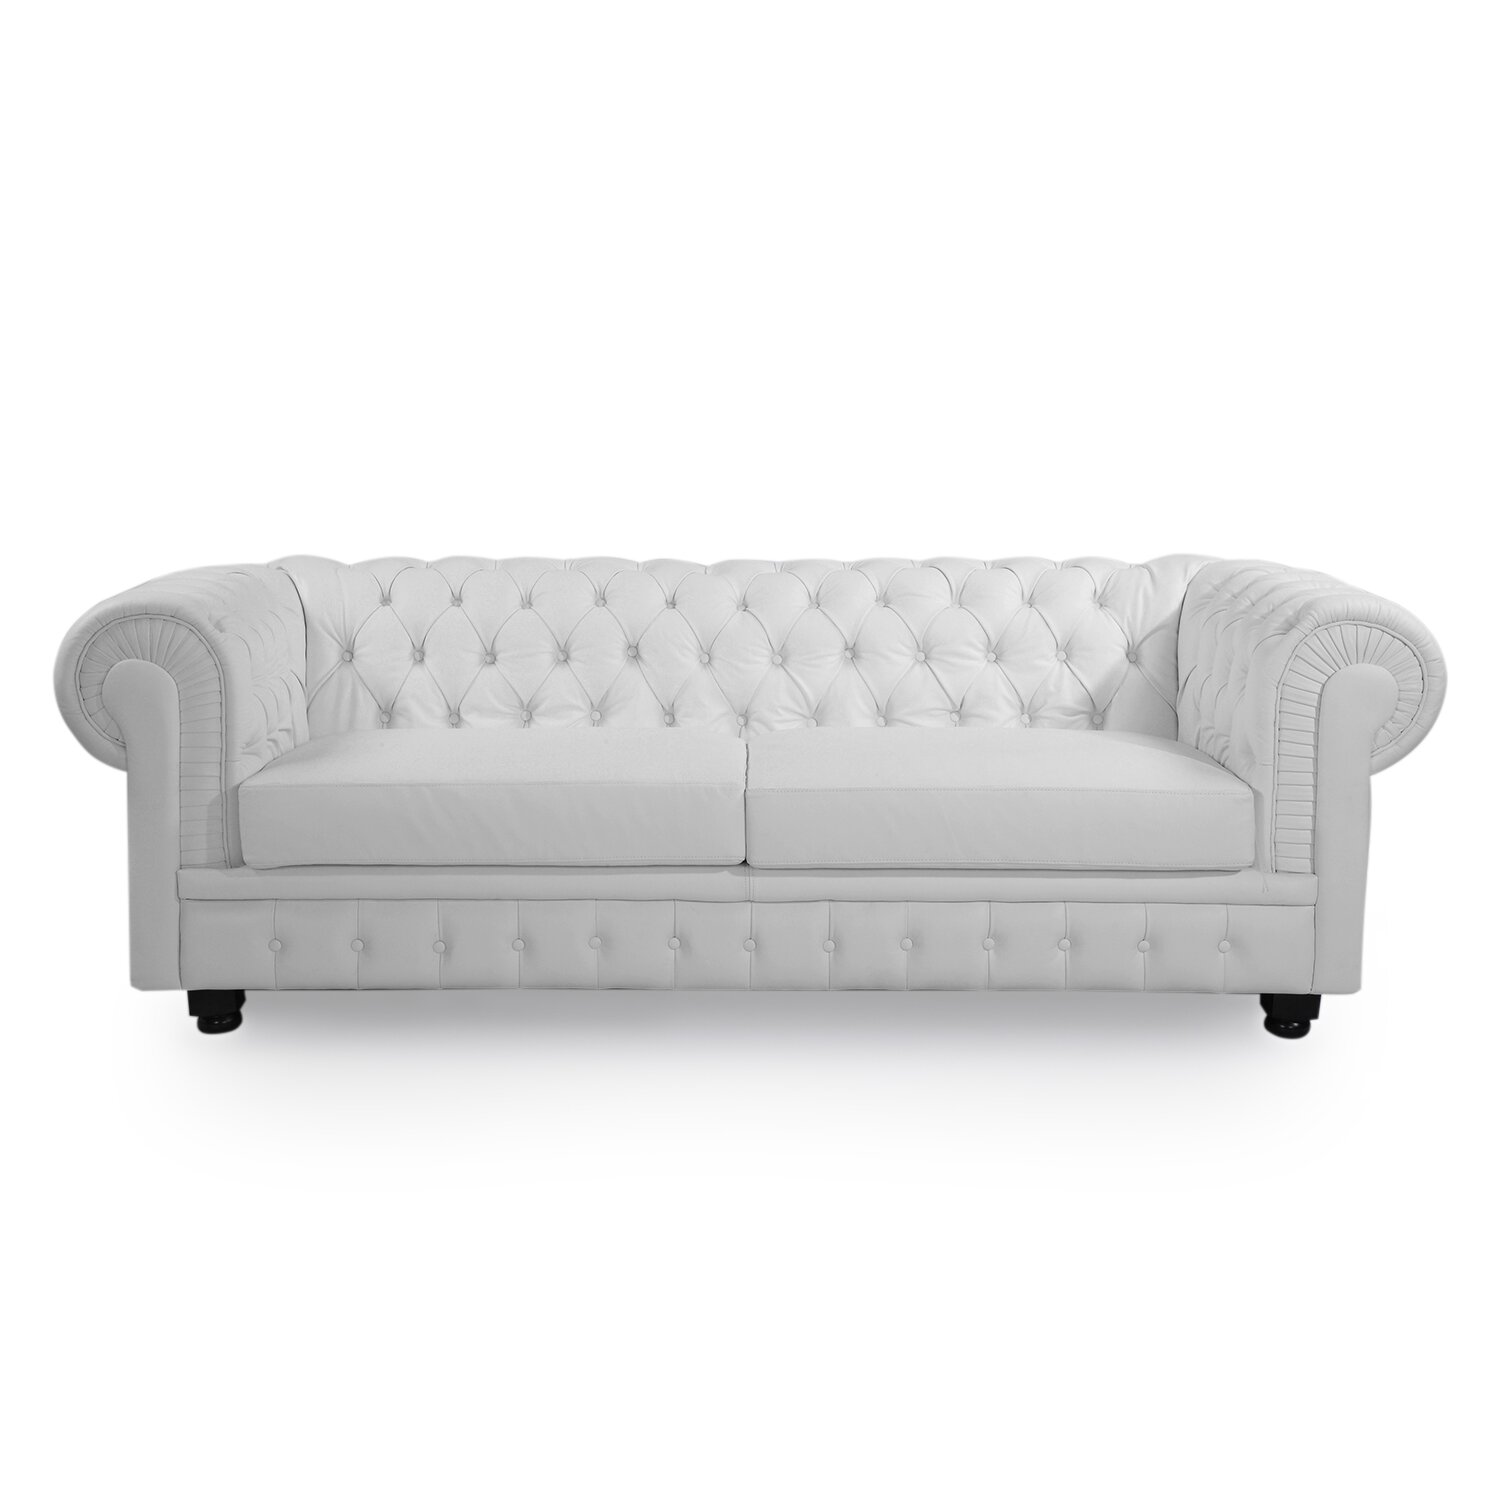 kardiel chesterfield modern classic sofa wayfair. Black Bedroom Furniture Sets. Home Design Ideas